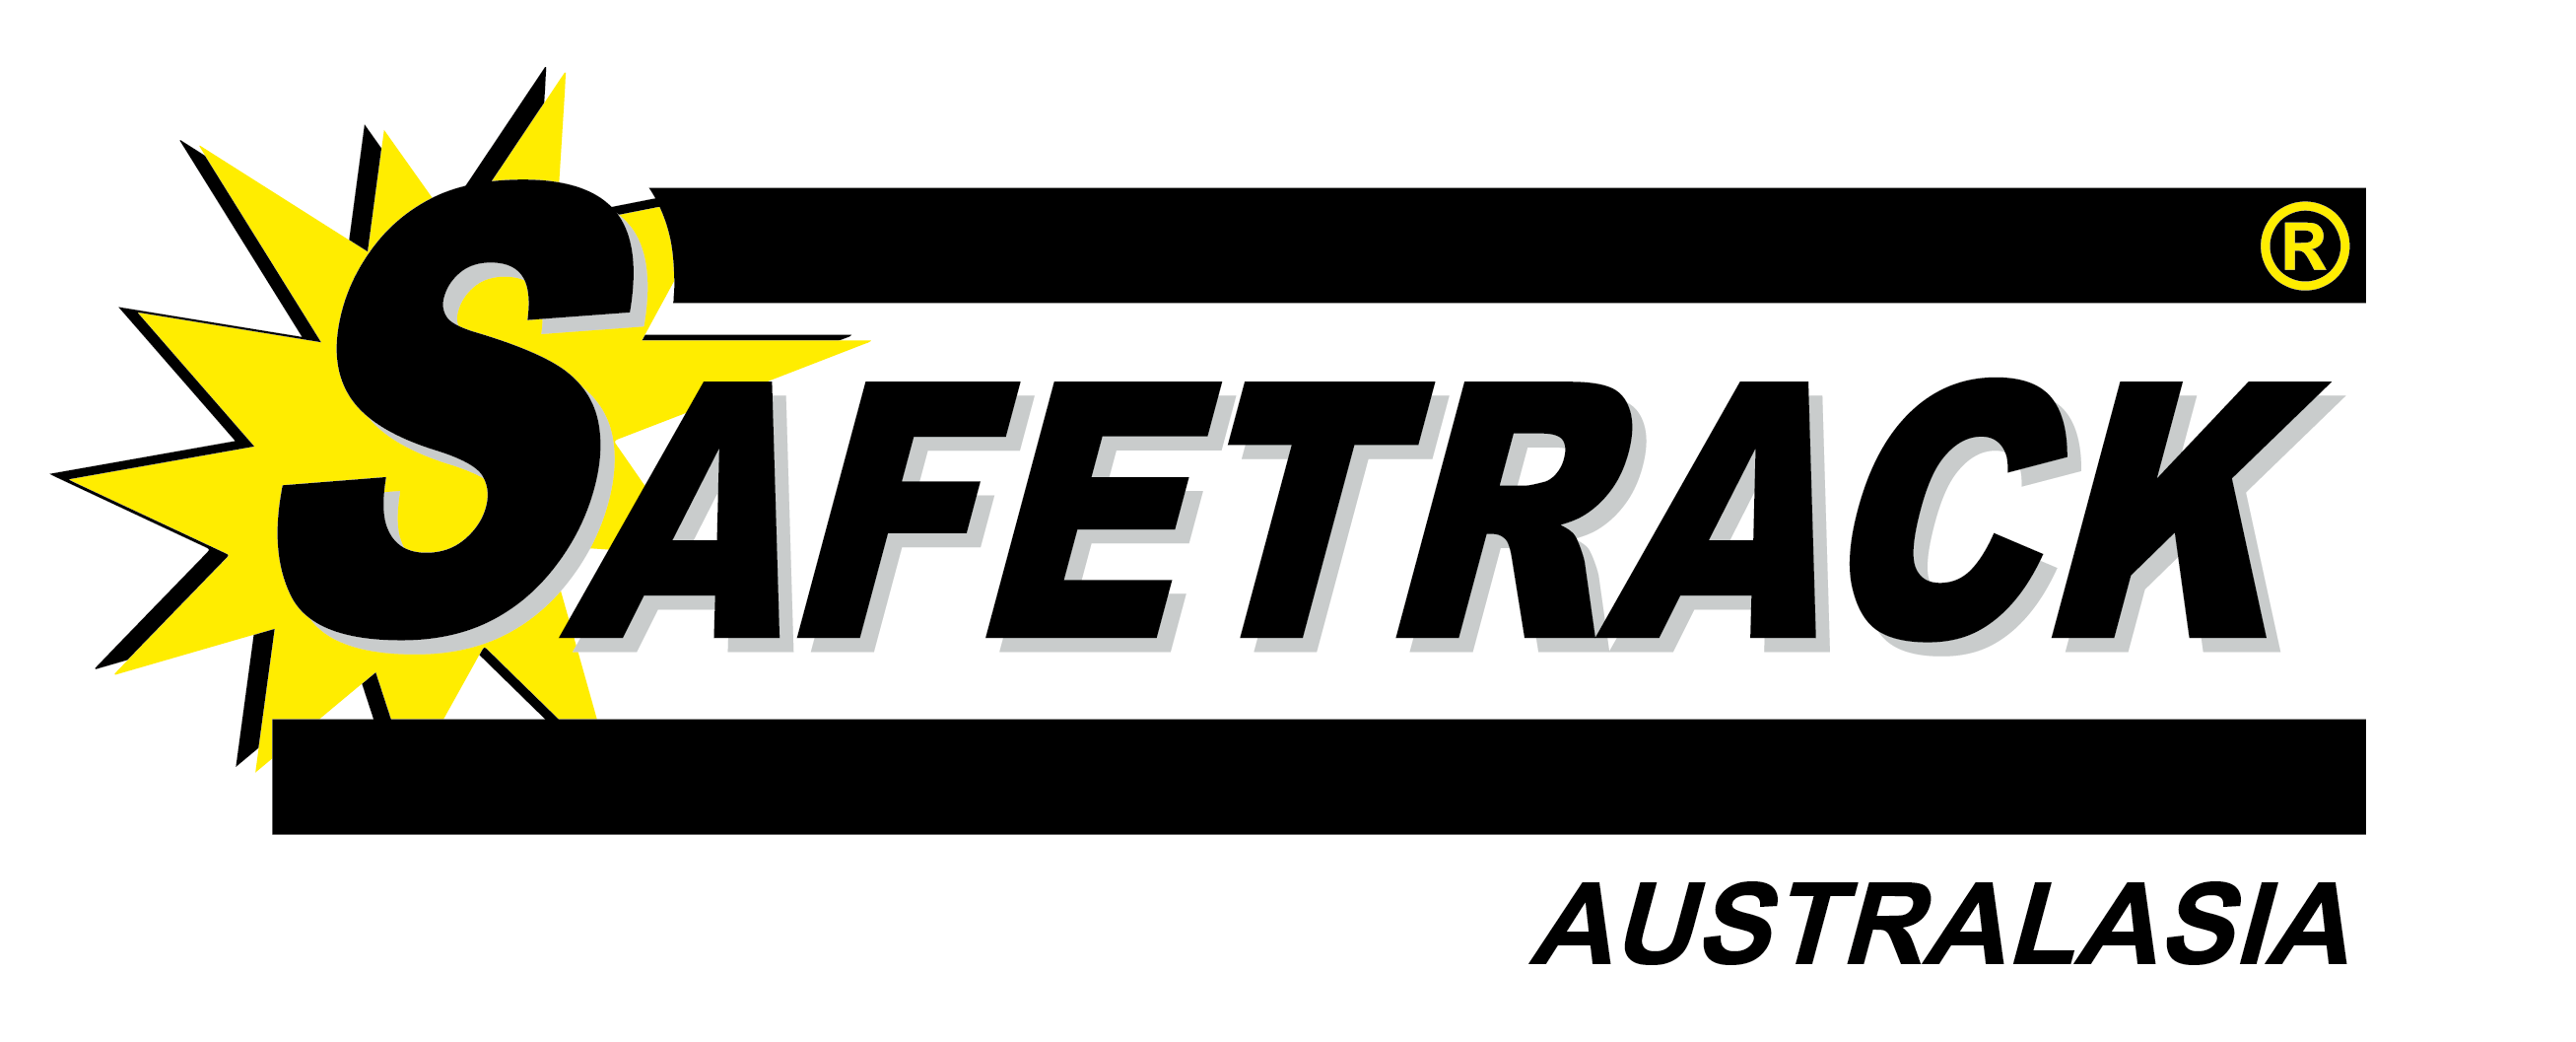 Safetrack Australasia